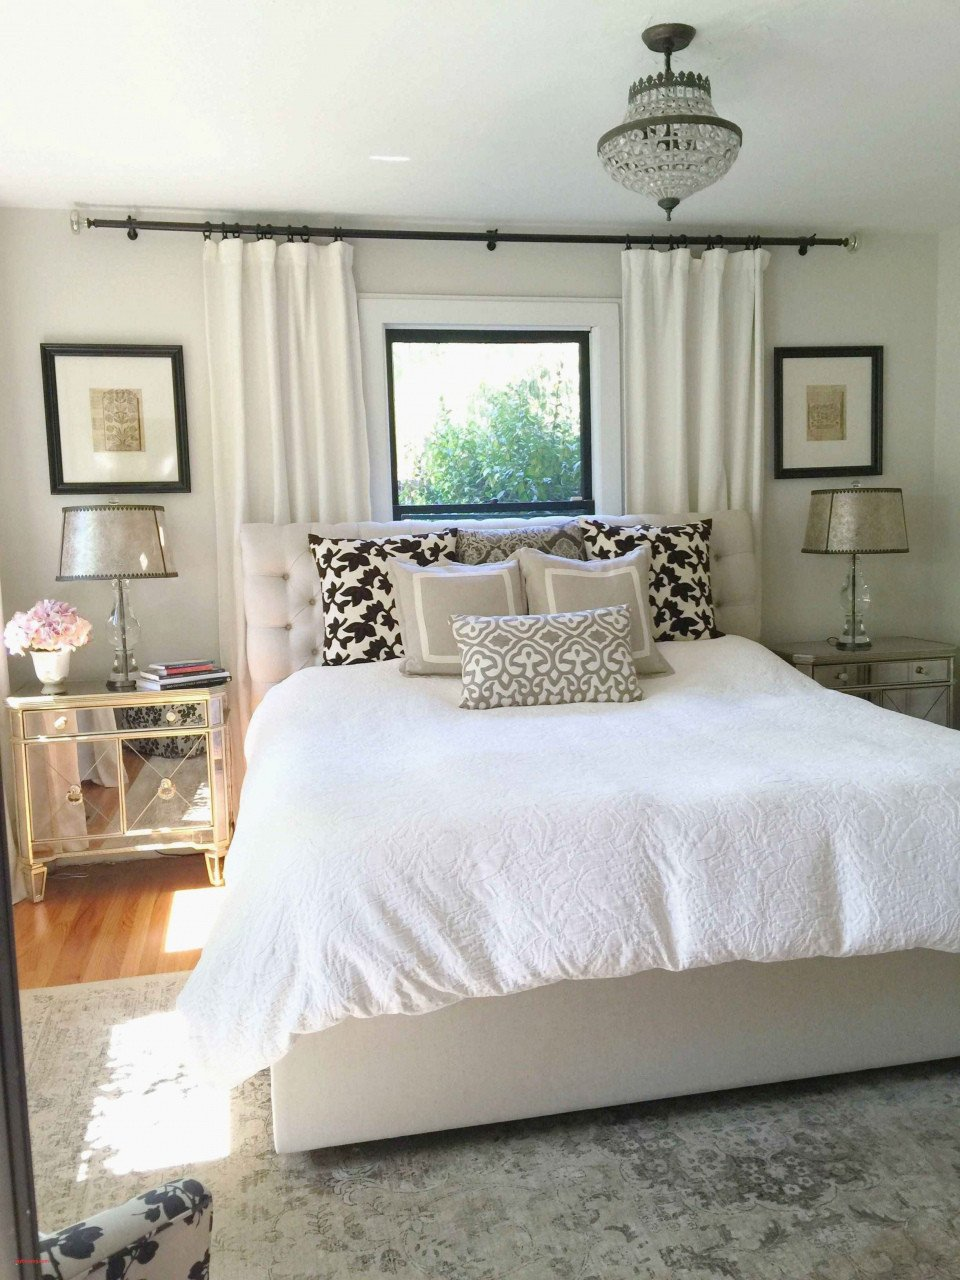 Girls White Bedroom Set Luxury Bedroom Sets Queen — Procura Home Blog